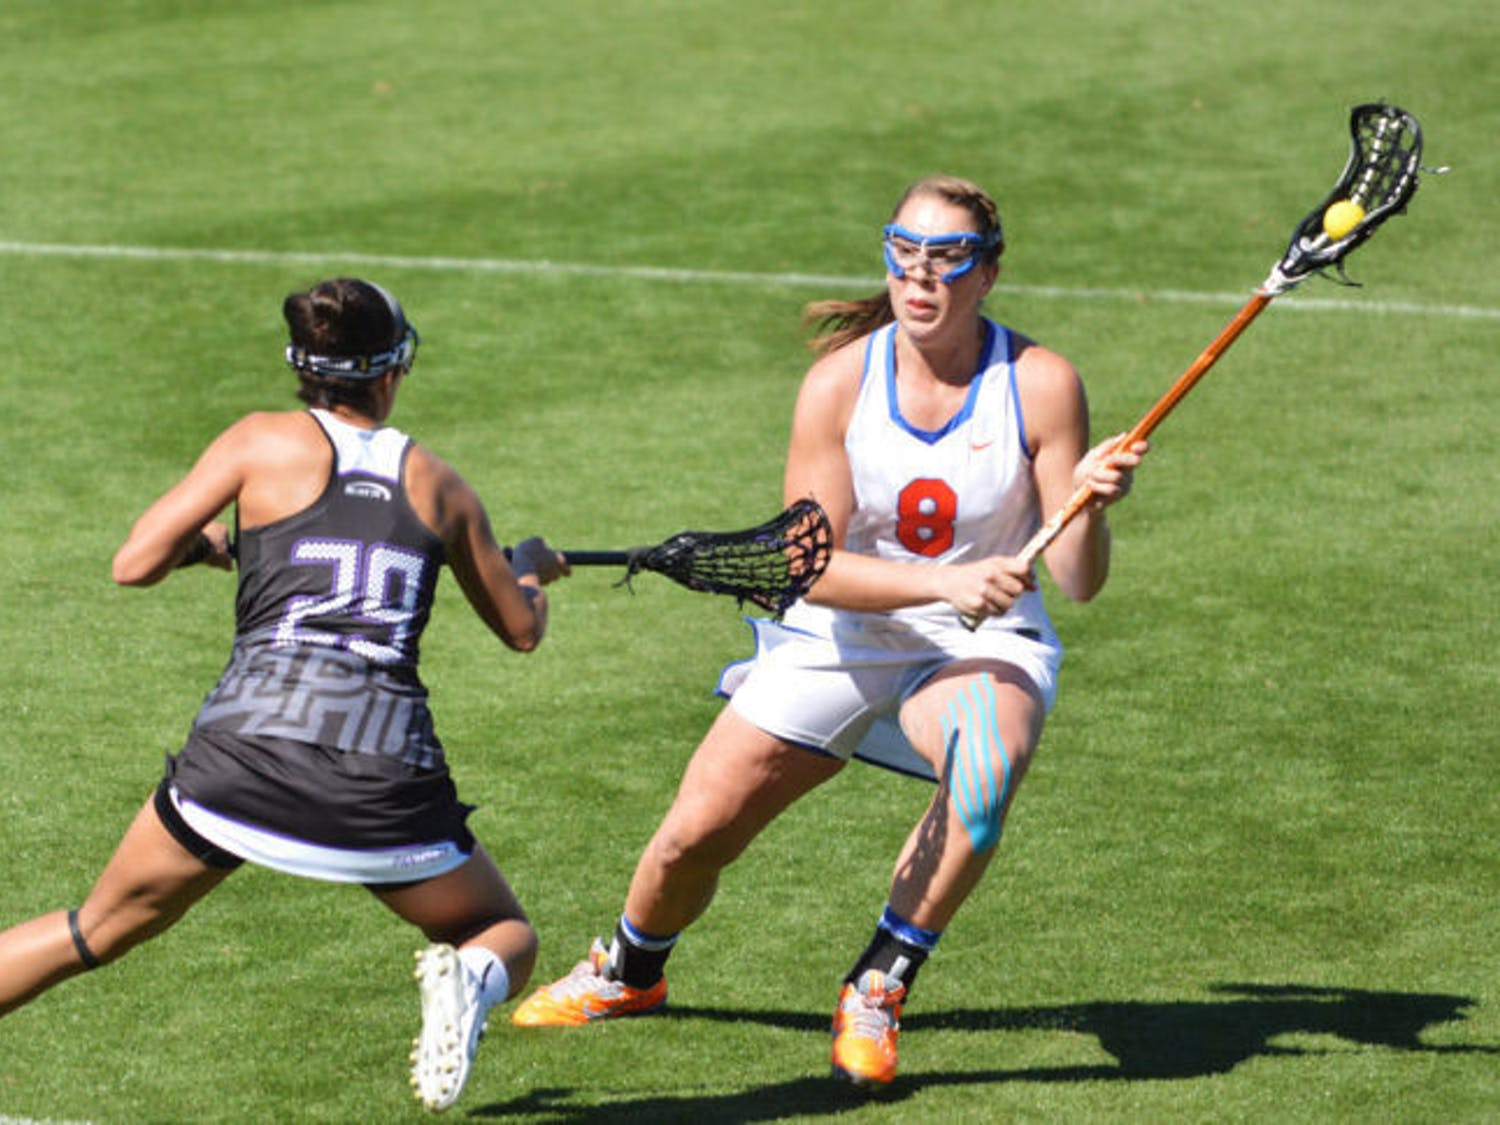 After graduating 12 seniors in 2013, Florida looked to 2014 as a year of rebuilding with 11 new players on the field. However, Florida ended conference play undefeated despite the lack of experience. The Gators won their fourth straight American Lacrosse Conference regular-season title, second conference tournament title and made a fourth straight NCAA Quarterfinals appearance. Next season, Florida will still be fighting to be the No. 1 seed, but coach Amanda O'Leary and company will have to do so in their new conference: The Big East.